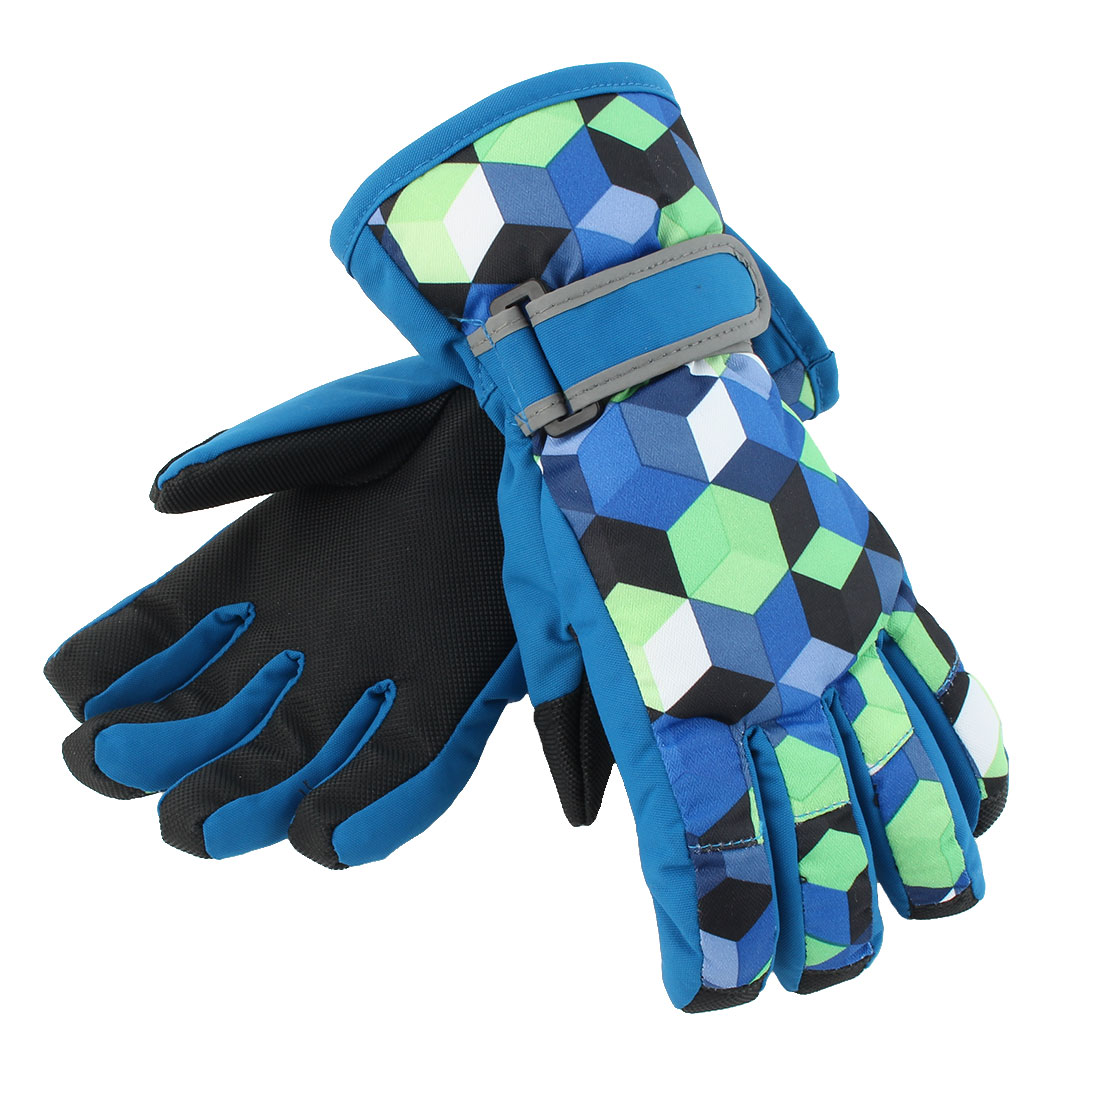 Outdoor Motorcycle Snowmobile Snowboard Ski Gloves Athletic Mittens Teal Blue XS